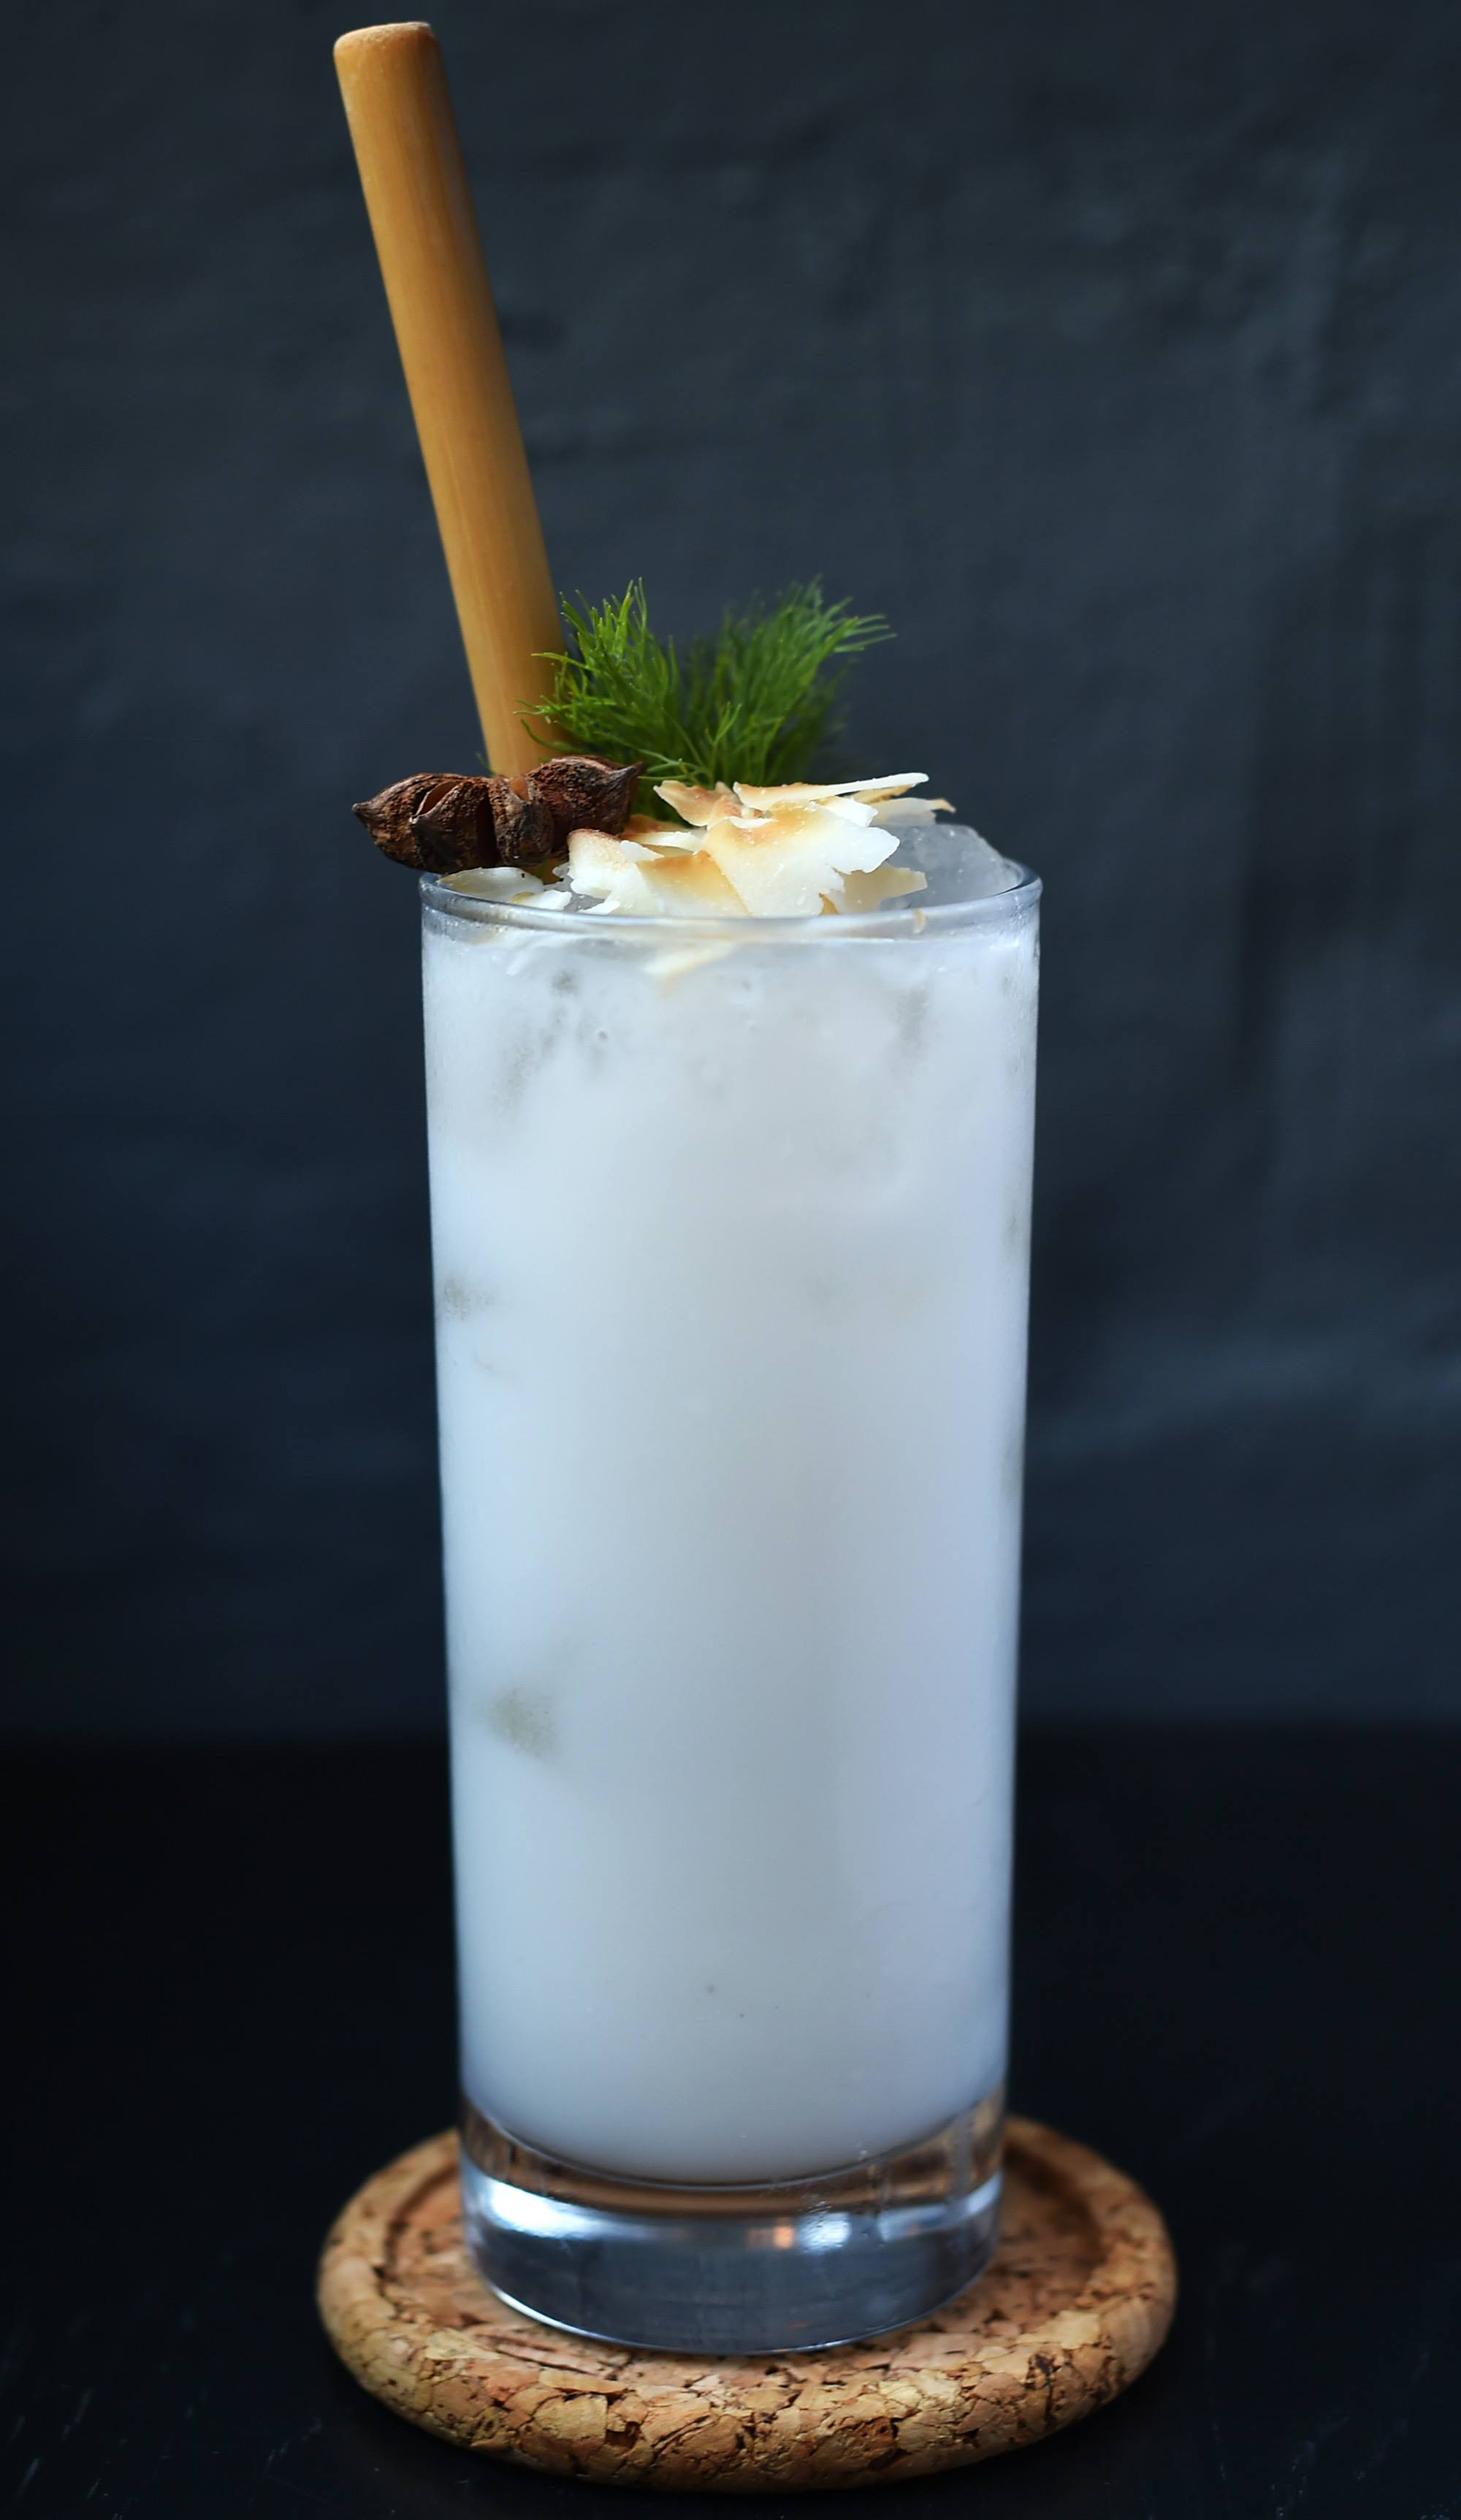 Ama'r Colada - a spin on a classic based on dill aquavit